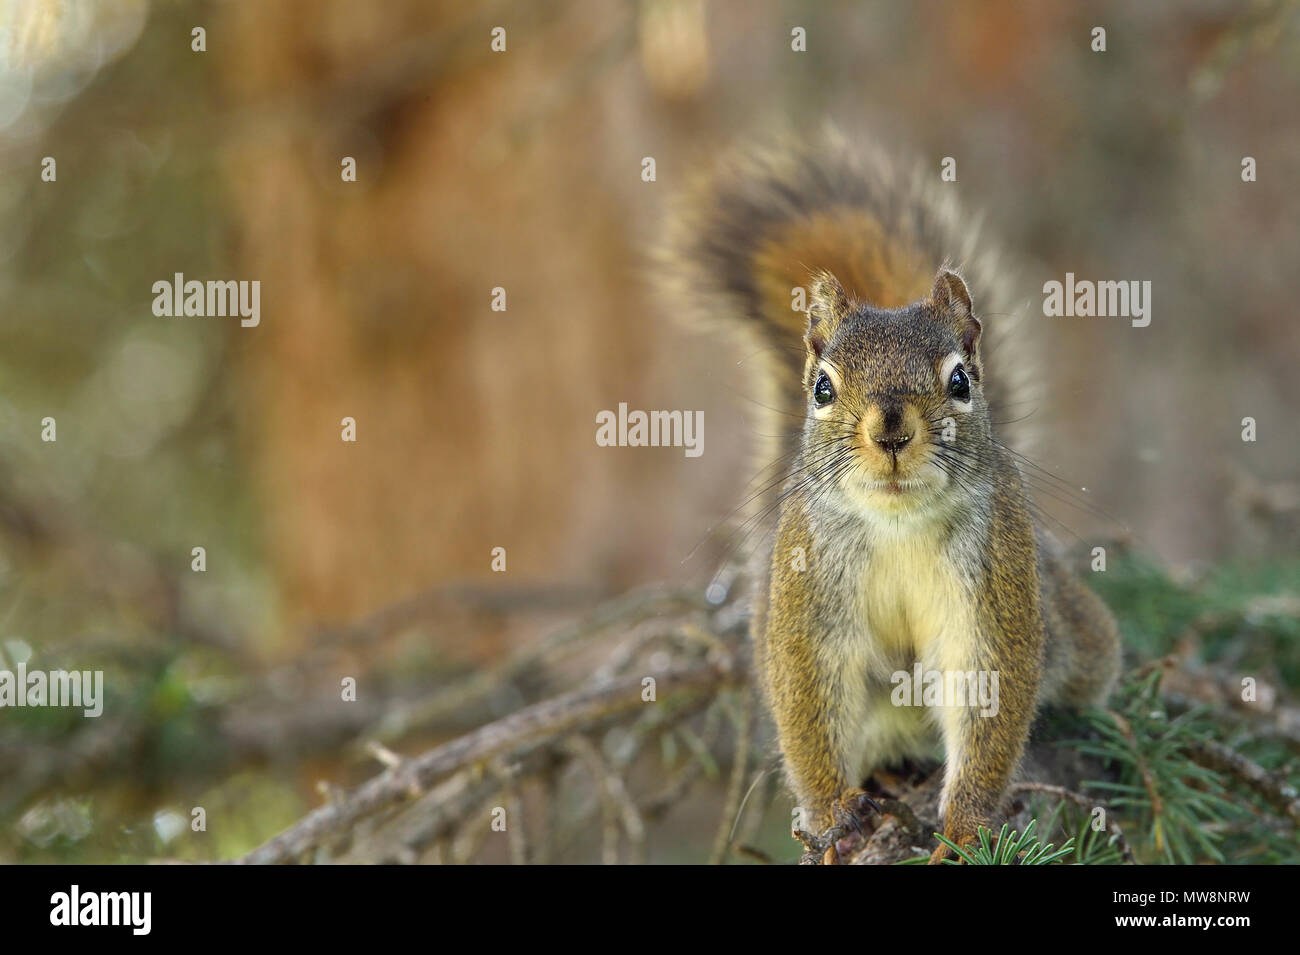 A front view of a wild red squirrel 'Tamiasciurus hudsonicus'; standing upright on branch of a spruce tree in rural Alberta Canada - Stock Image